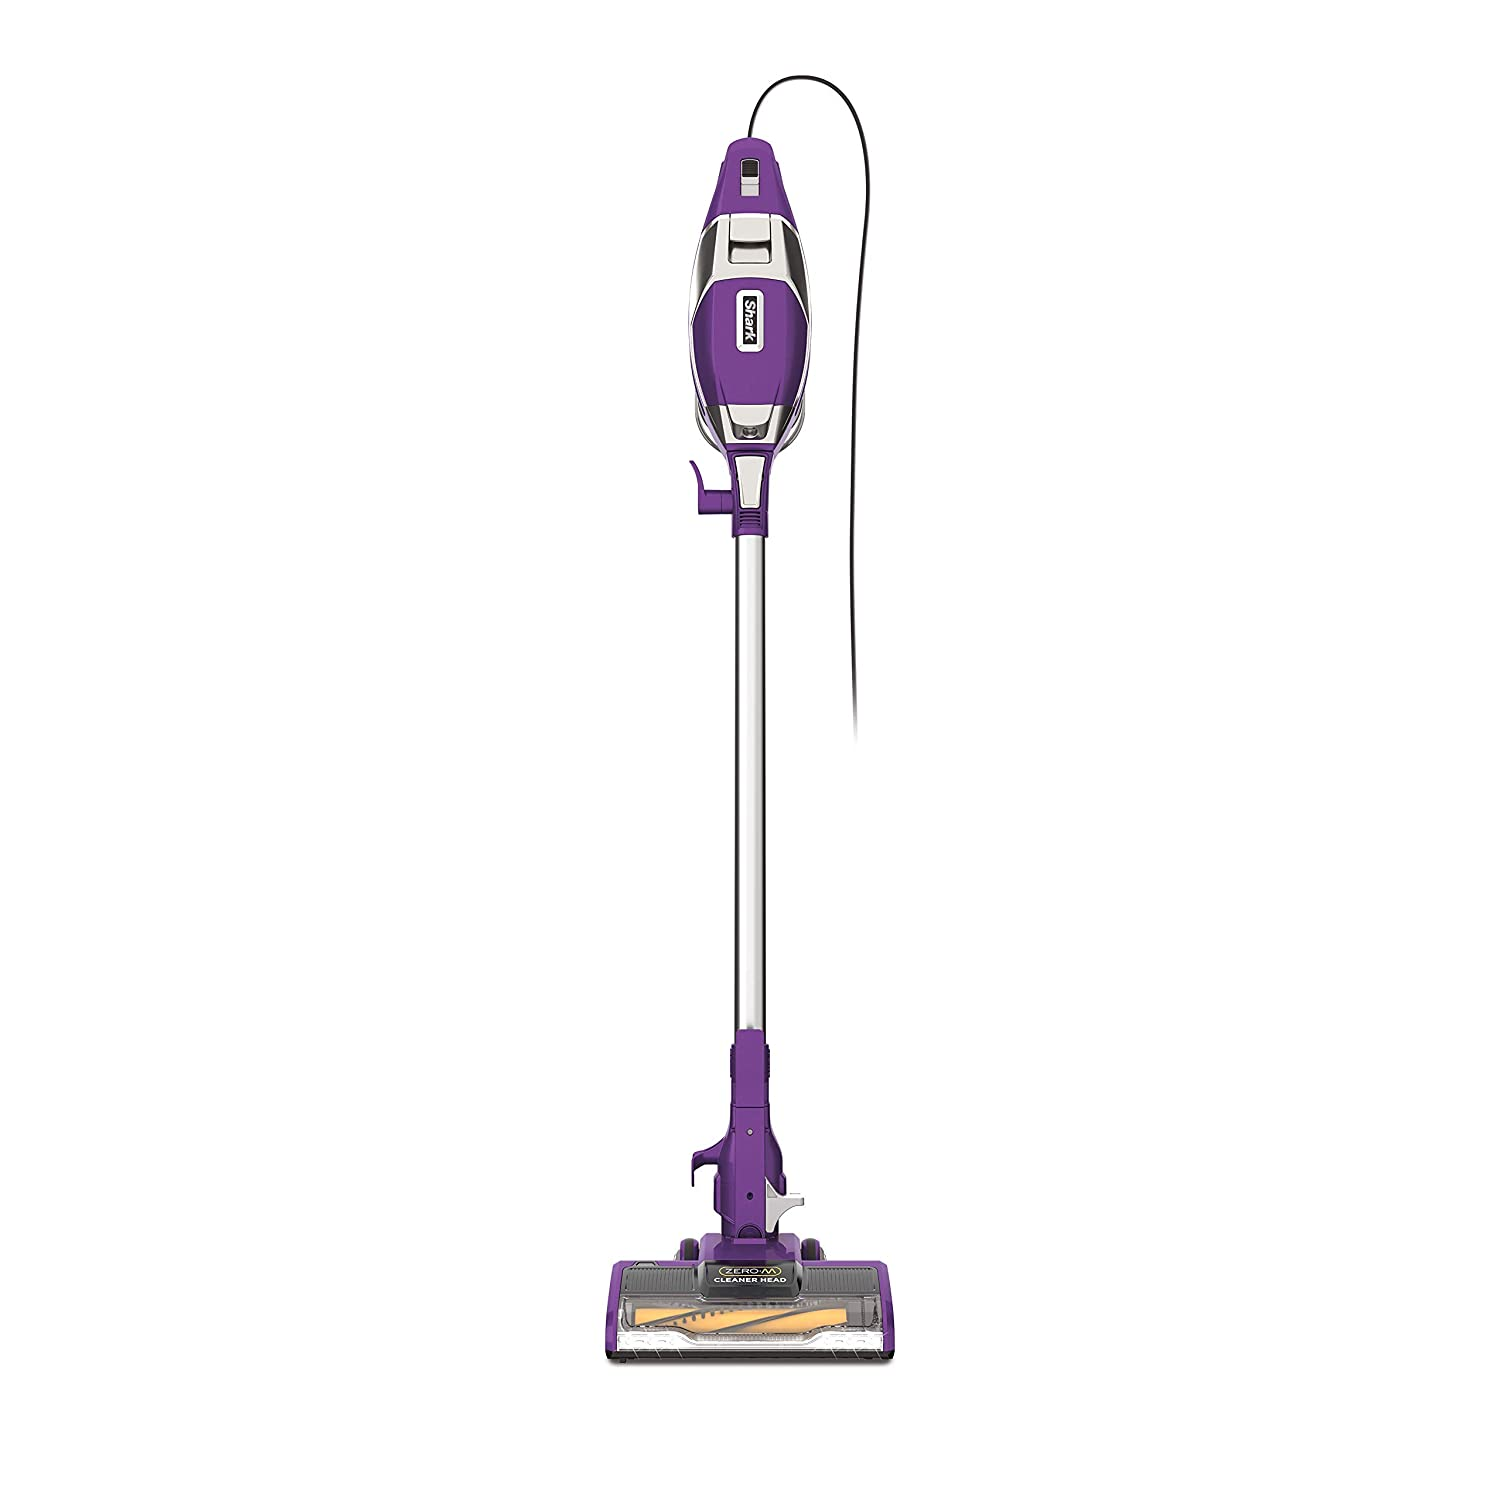 Shark Rocket Corded Ultra-Light Vacuum with Zero-M Anti-Hair Wrap Technology, XL Dust Cup, Hand Vacuum Mode, & Swivel Steering (ZS351), Plum Purple (Renewed)